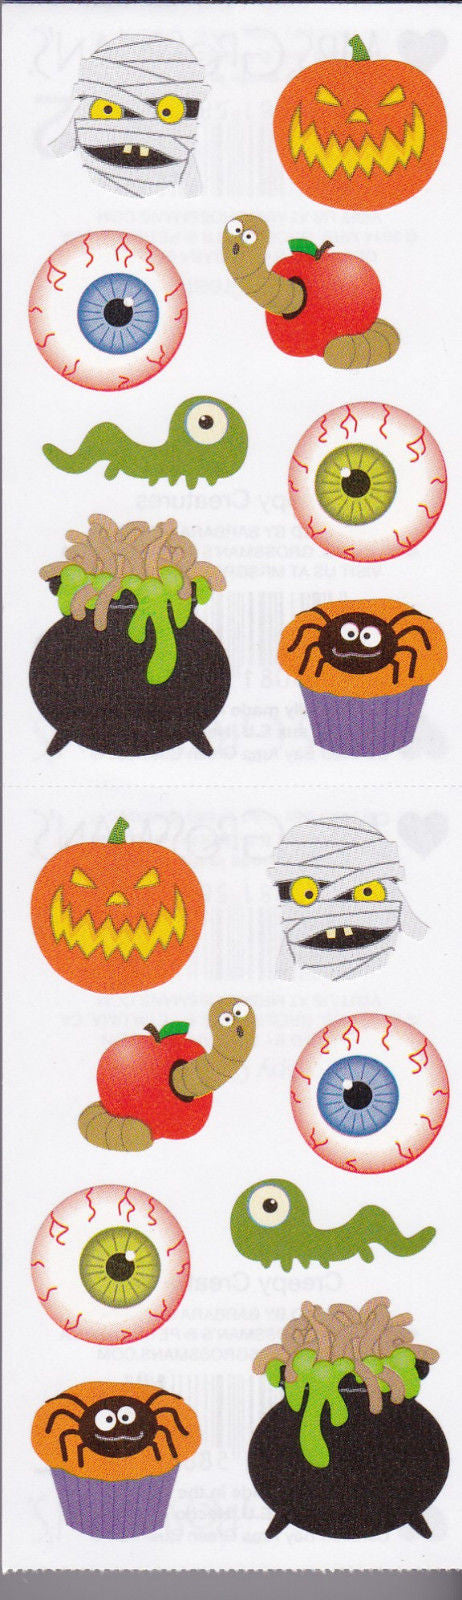 Mrs. Grossman's Stickers Halloween Creepy Creatures - Off The Wall Toys and Gifts